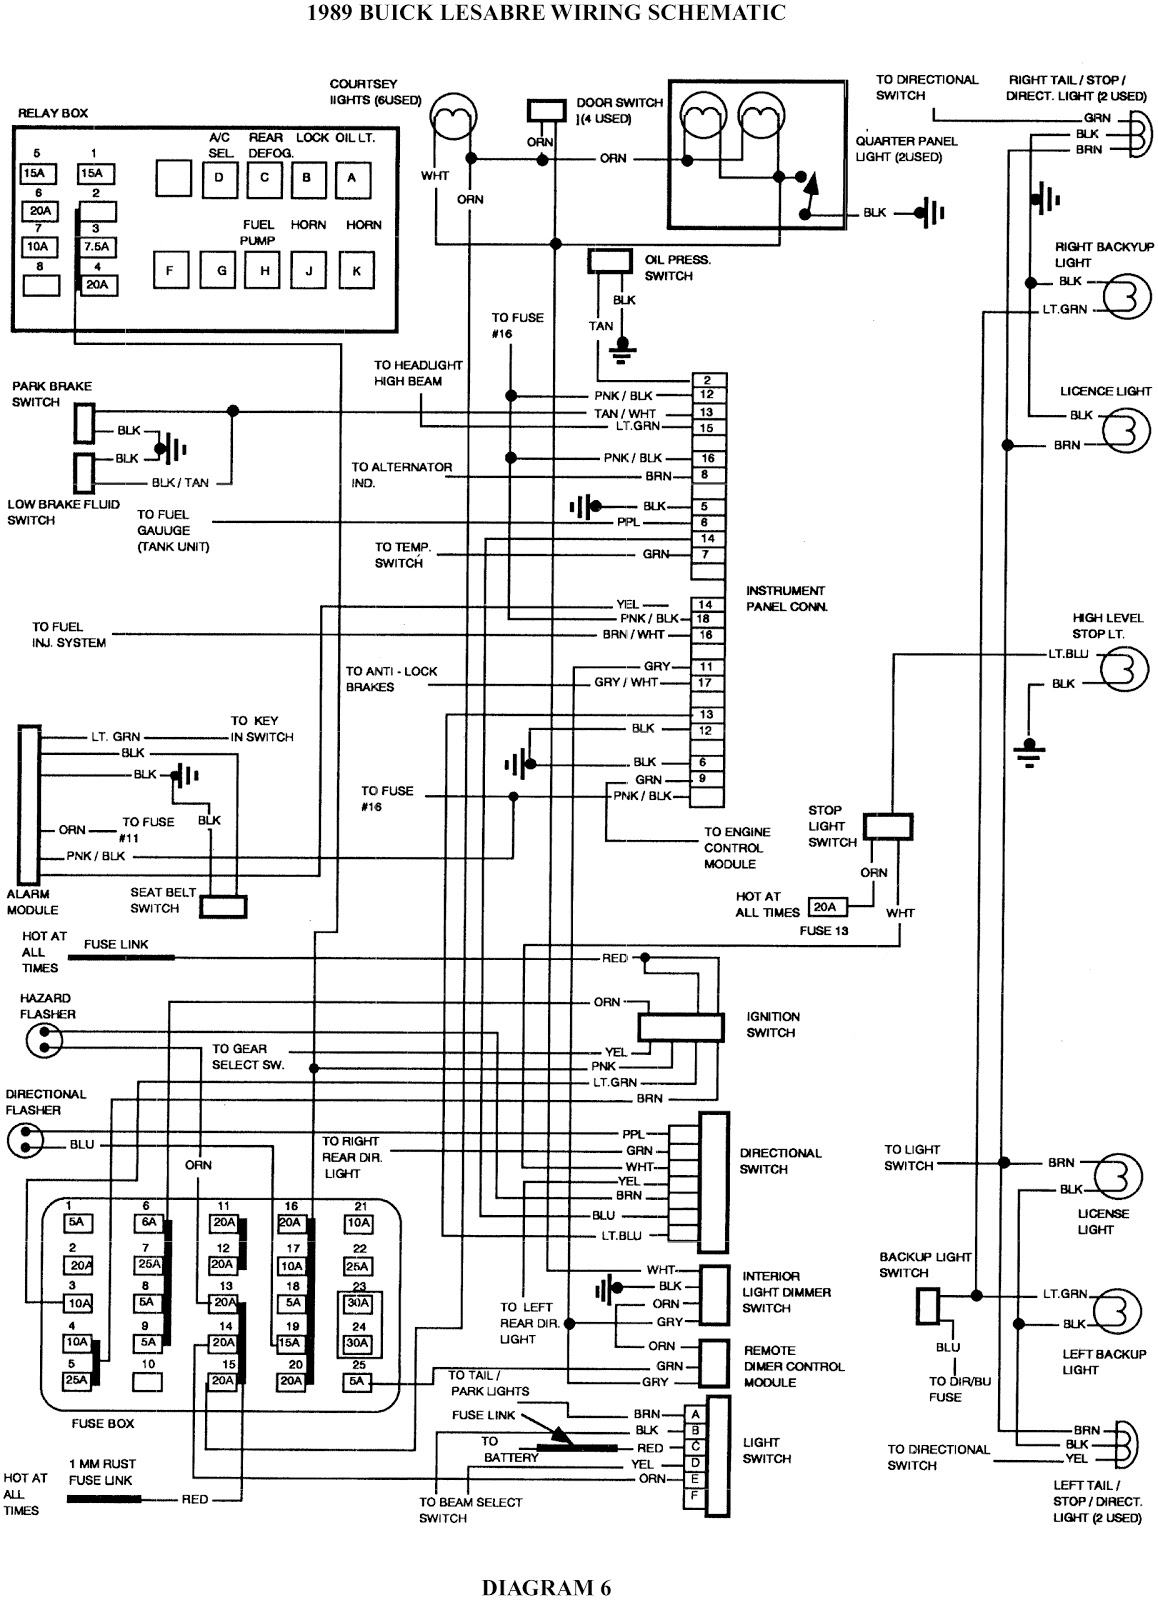 2004 Buick Regal Fuse Box Diagram 2003 Buick Regal Fuse